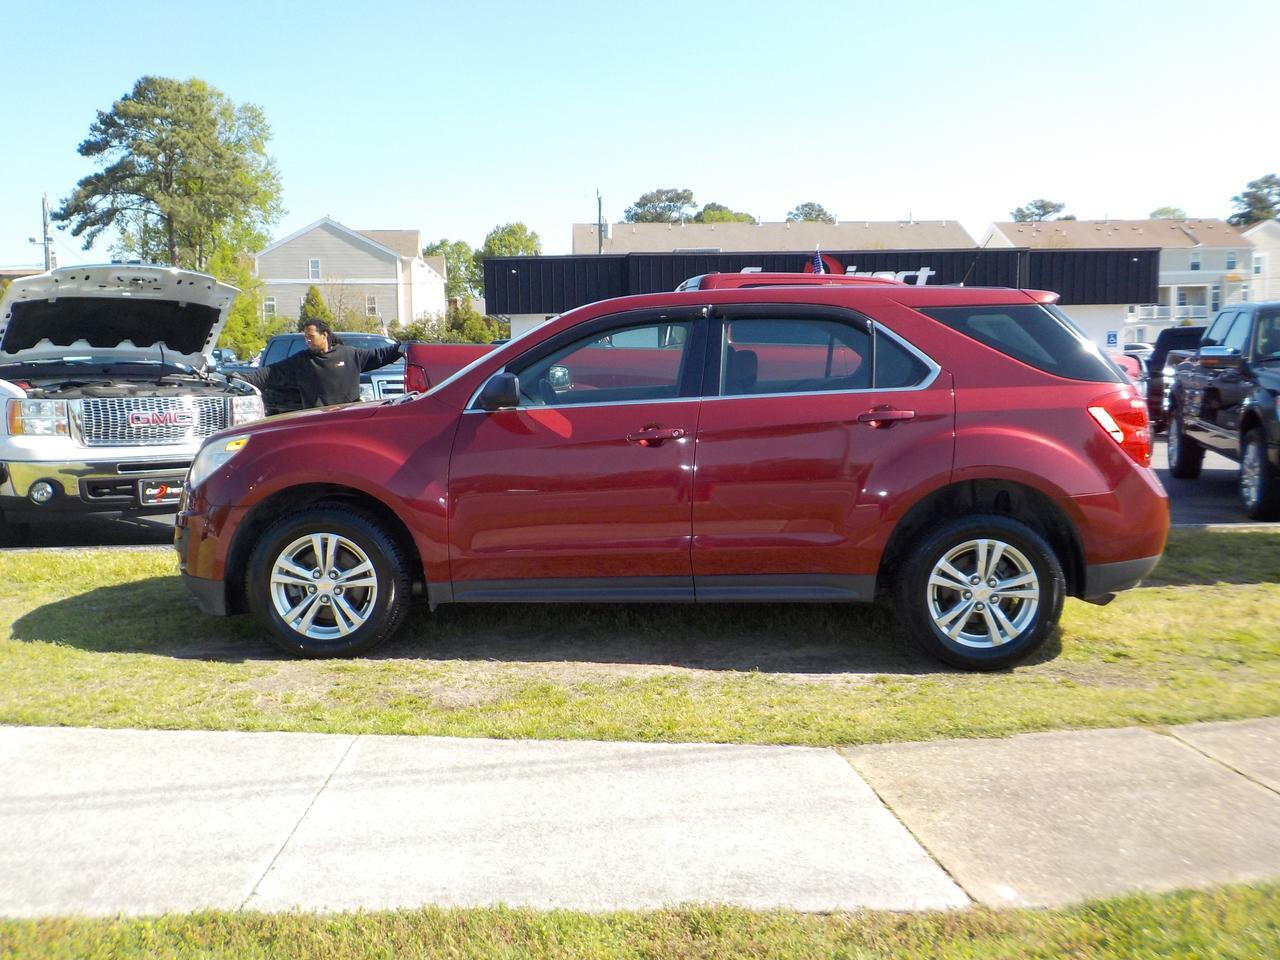 2010 CHEVROLET EQUINOX LS, BLUETOOTH, KEYLESS ENTRY, REAR SPOILER ON LIFTGATE, CLIMATE CONTROL, AUTOMATIC HEADLIGHTS! Virginia Beach VA